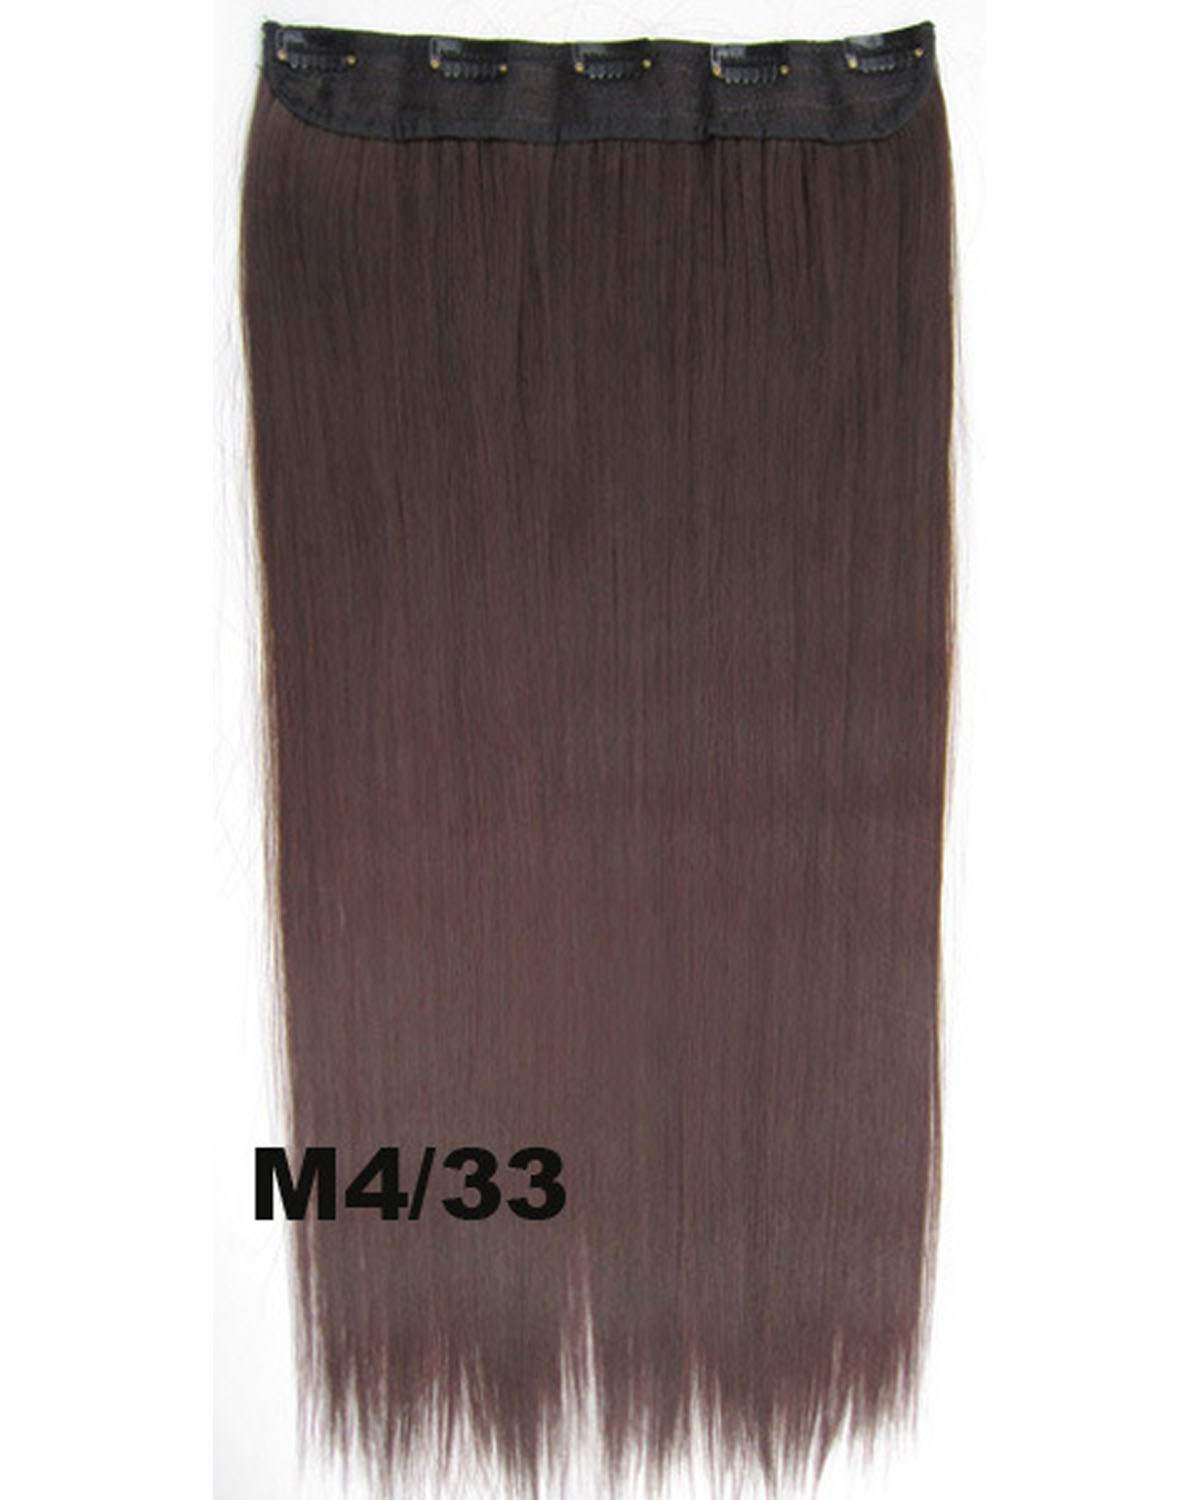 24 Inch Female Sophisticated Long and Straight Hot-Sale One Piece 5 Clips Clip in Synthetic Hair Extension M4/33